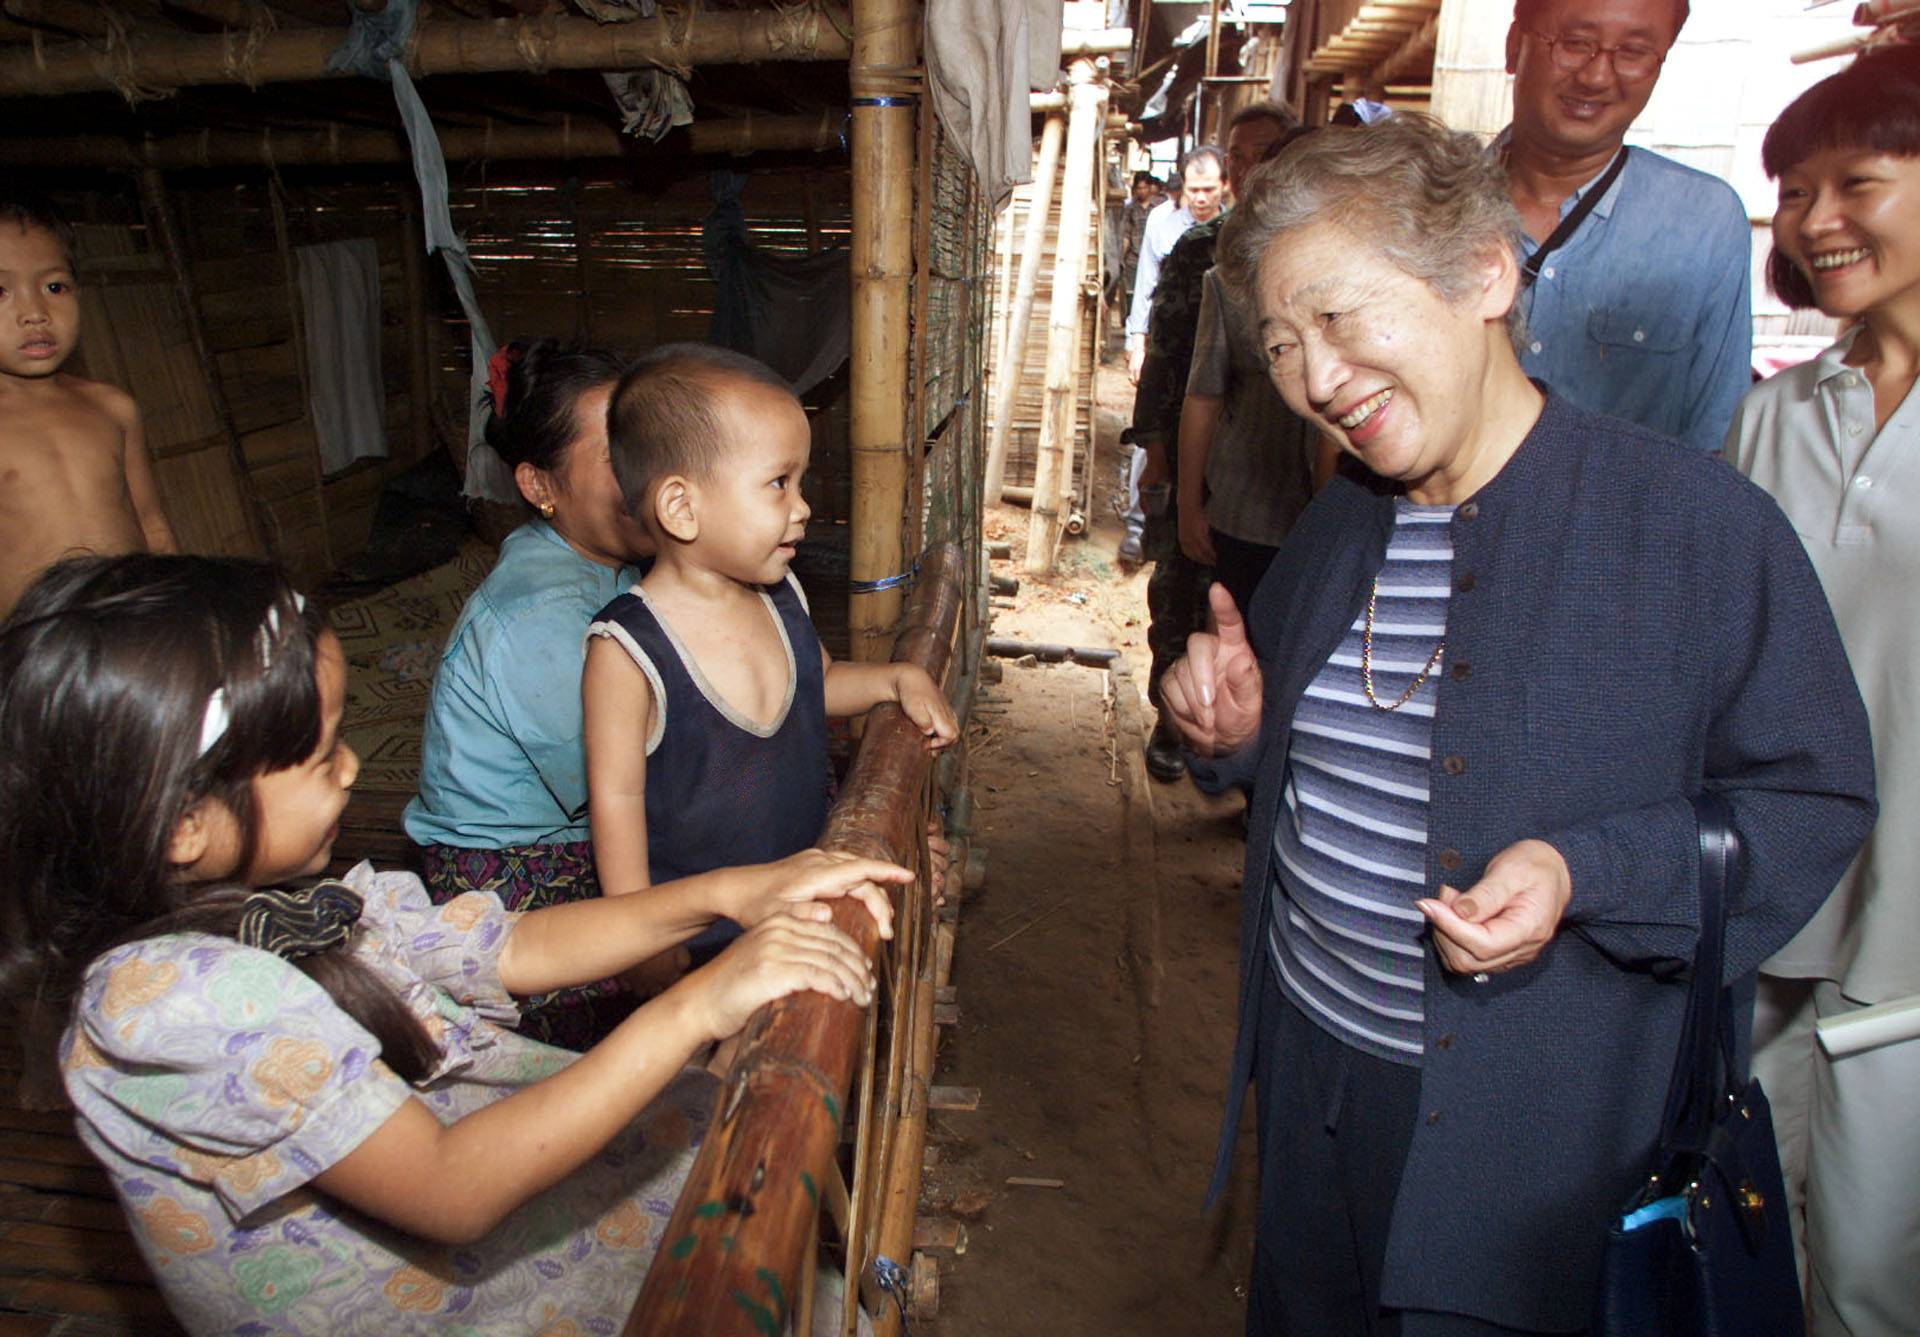 FILE PHOTO: United Nations High Commissioner for Refugees Sadako Ogata talks to a young refugee family from Myanmar at their camp in Thailand